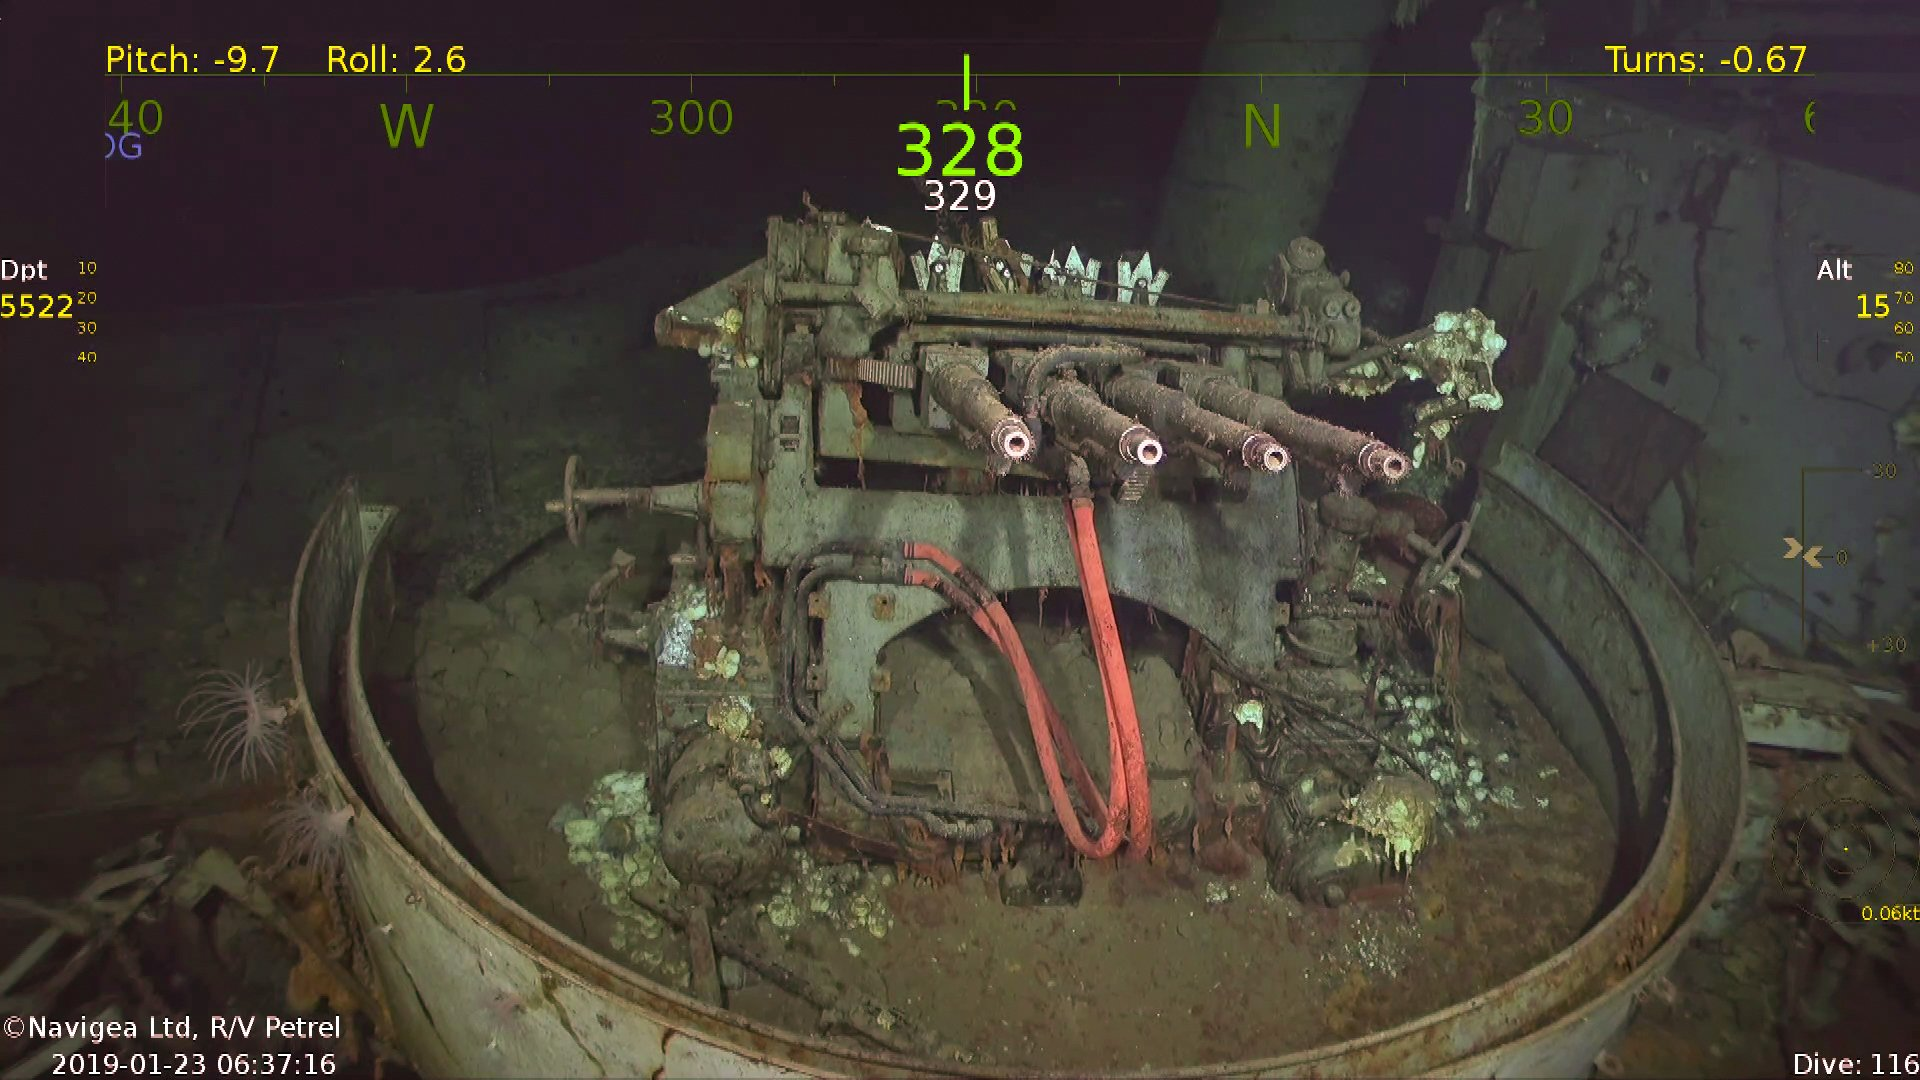 Remains of WW2 aircraft carrier found at the bottom of the south pacific https://paulallen.com/Indepth/Petrel/discoveries/uss-hornet-cv-8.php Credit: Navigea Ltd, R/V Petrel, Paul G. Allen's Vulcan Inc